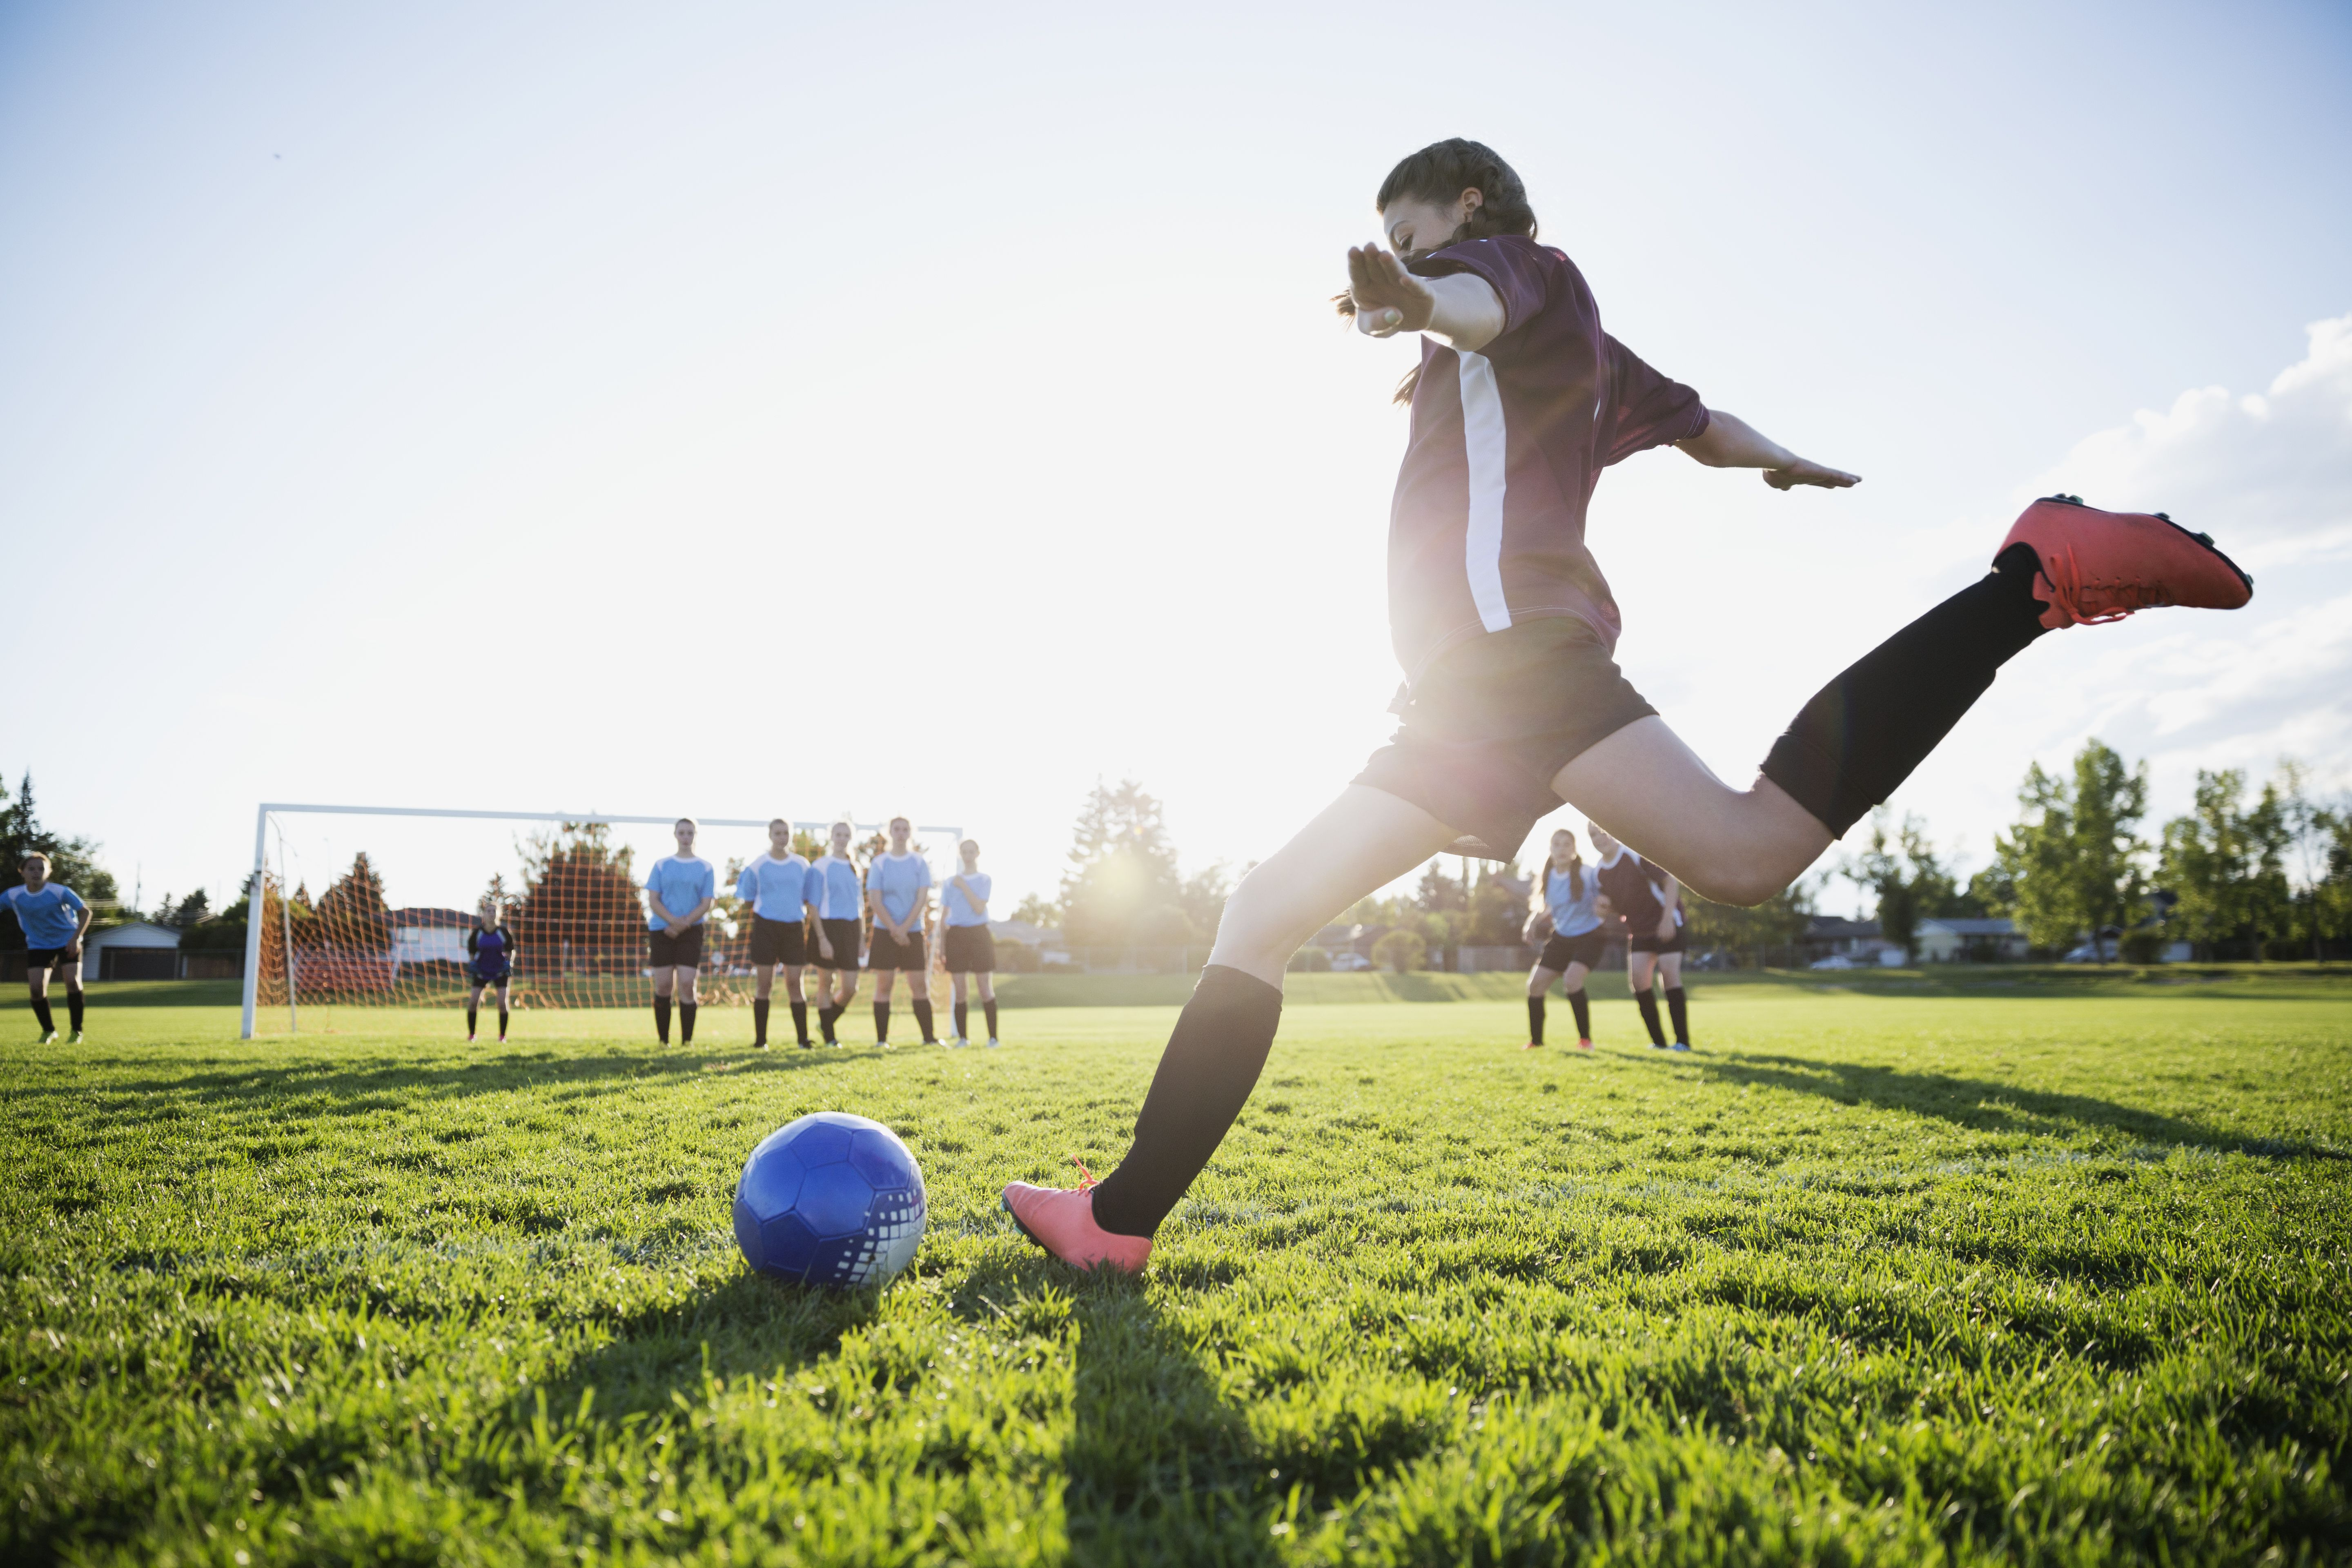 Middle school girl soccer player kicking free kick on sunny field